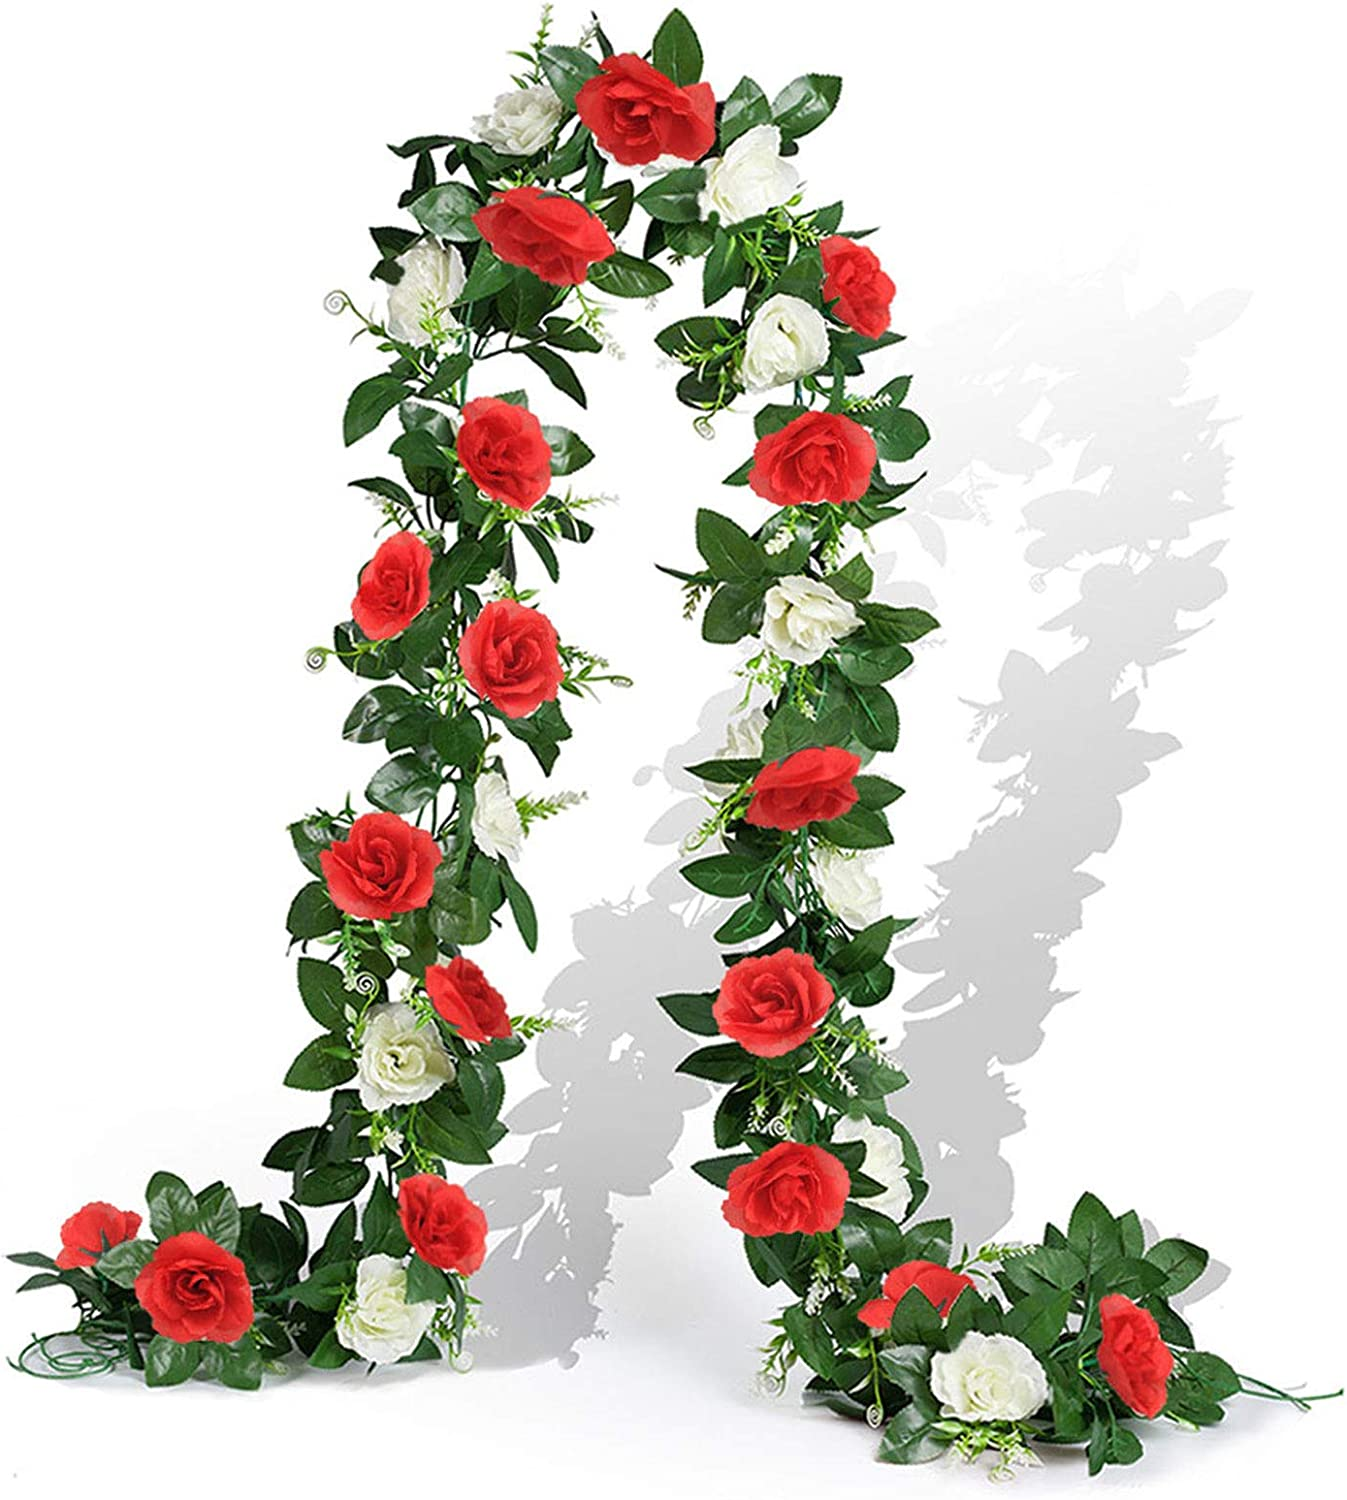 EPLST 2 Pack/15.7 FT Artificial Flowers Lifelike Silk Decorative Faked Flower Rose Vine Rattan Cane Garland Wall Hang Plant Wedding Party Home Garden Hotel Office Arch Arrangement Decoration White/Red